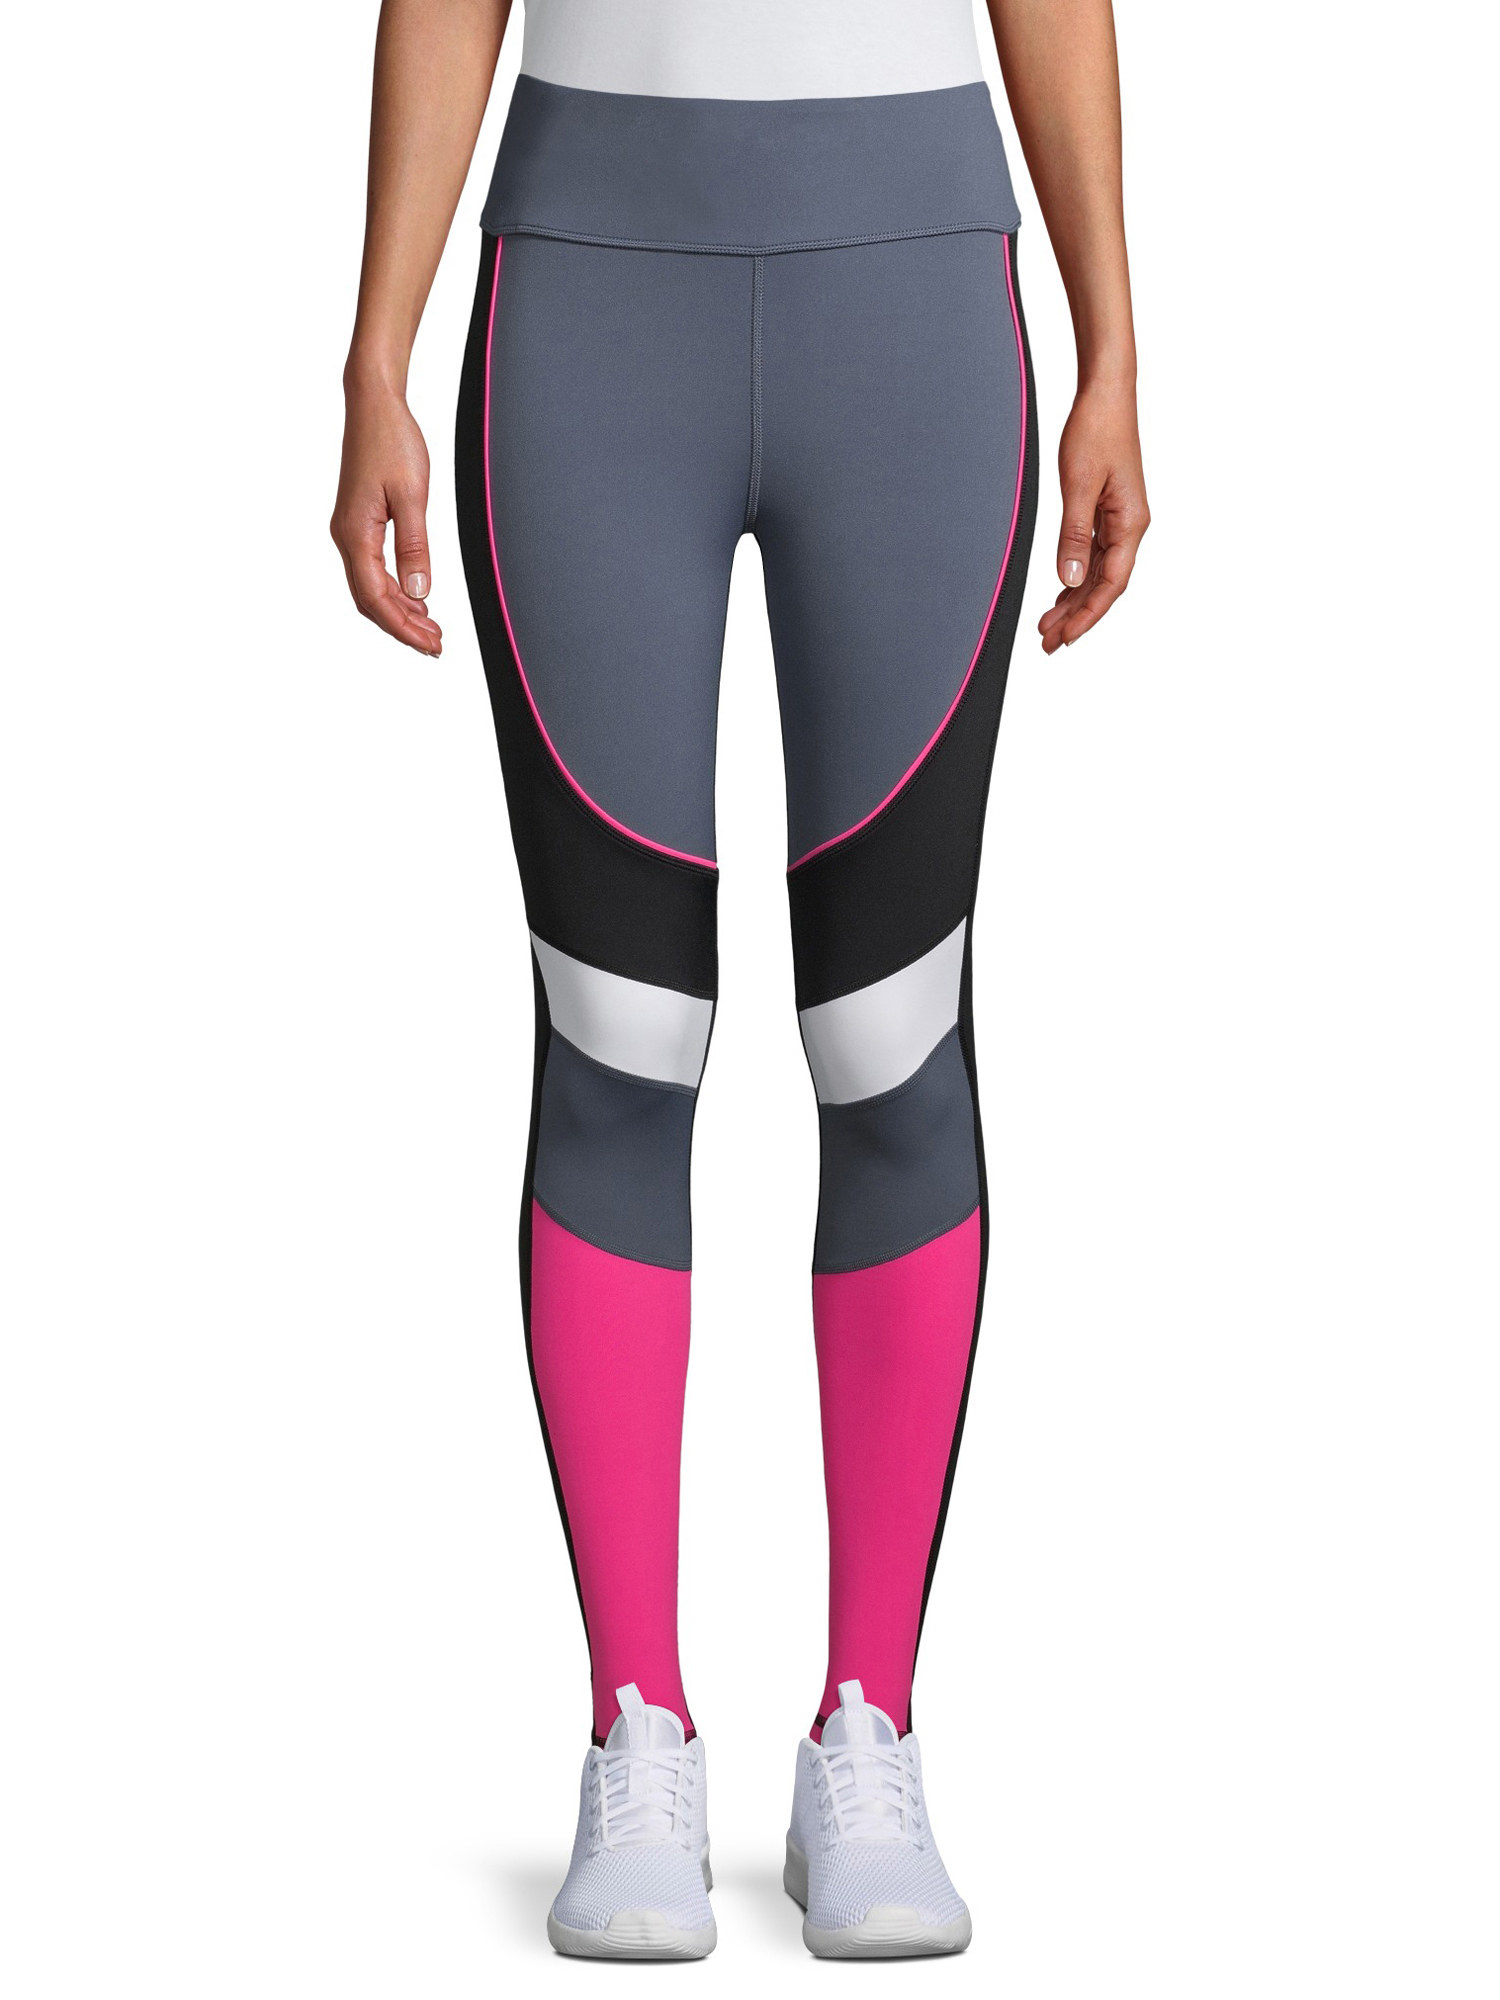 Barre /& Athleisure in Black with White and Pink Accent Leggings for Yoga